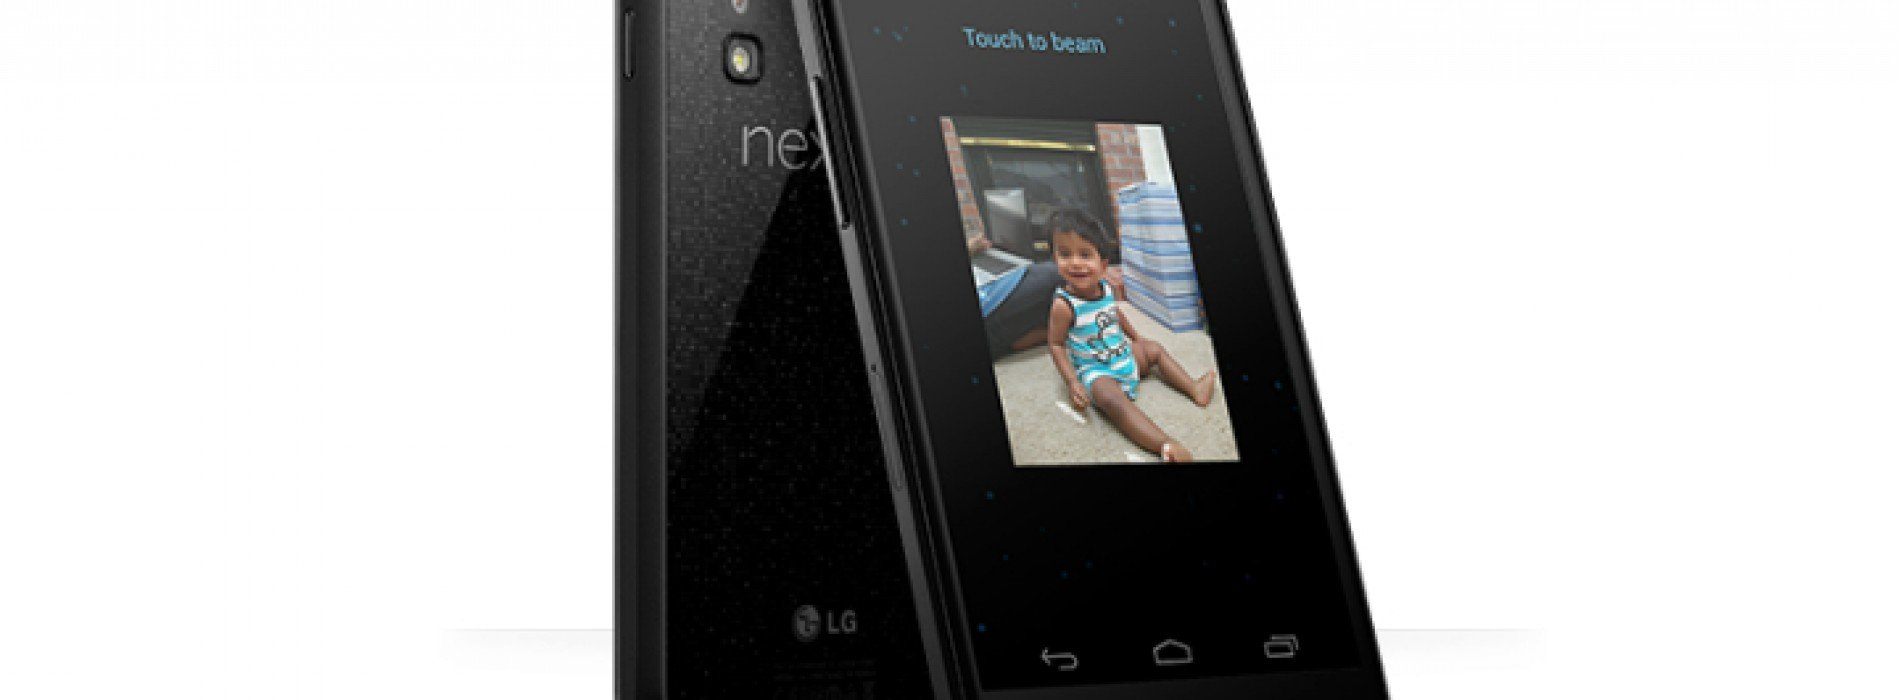 Google announces Nexus 4 for November 13